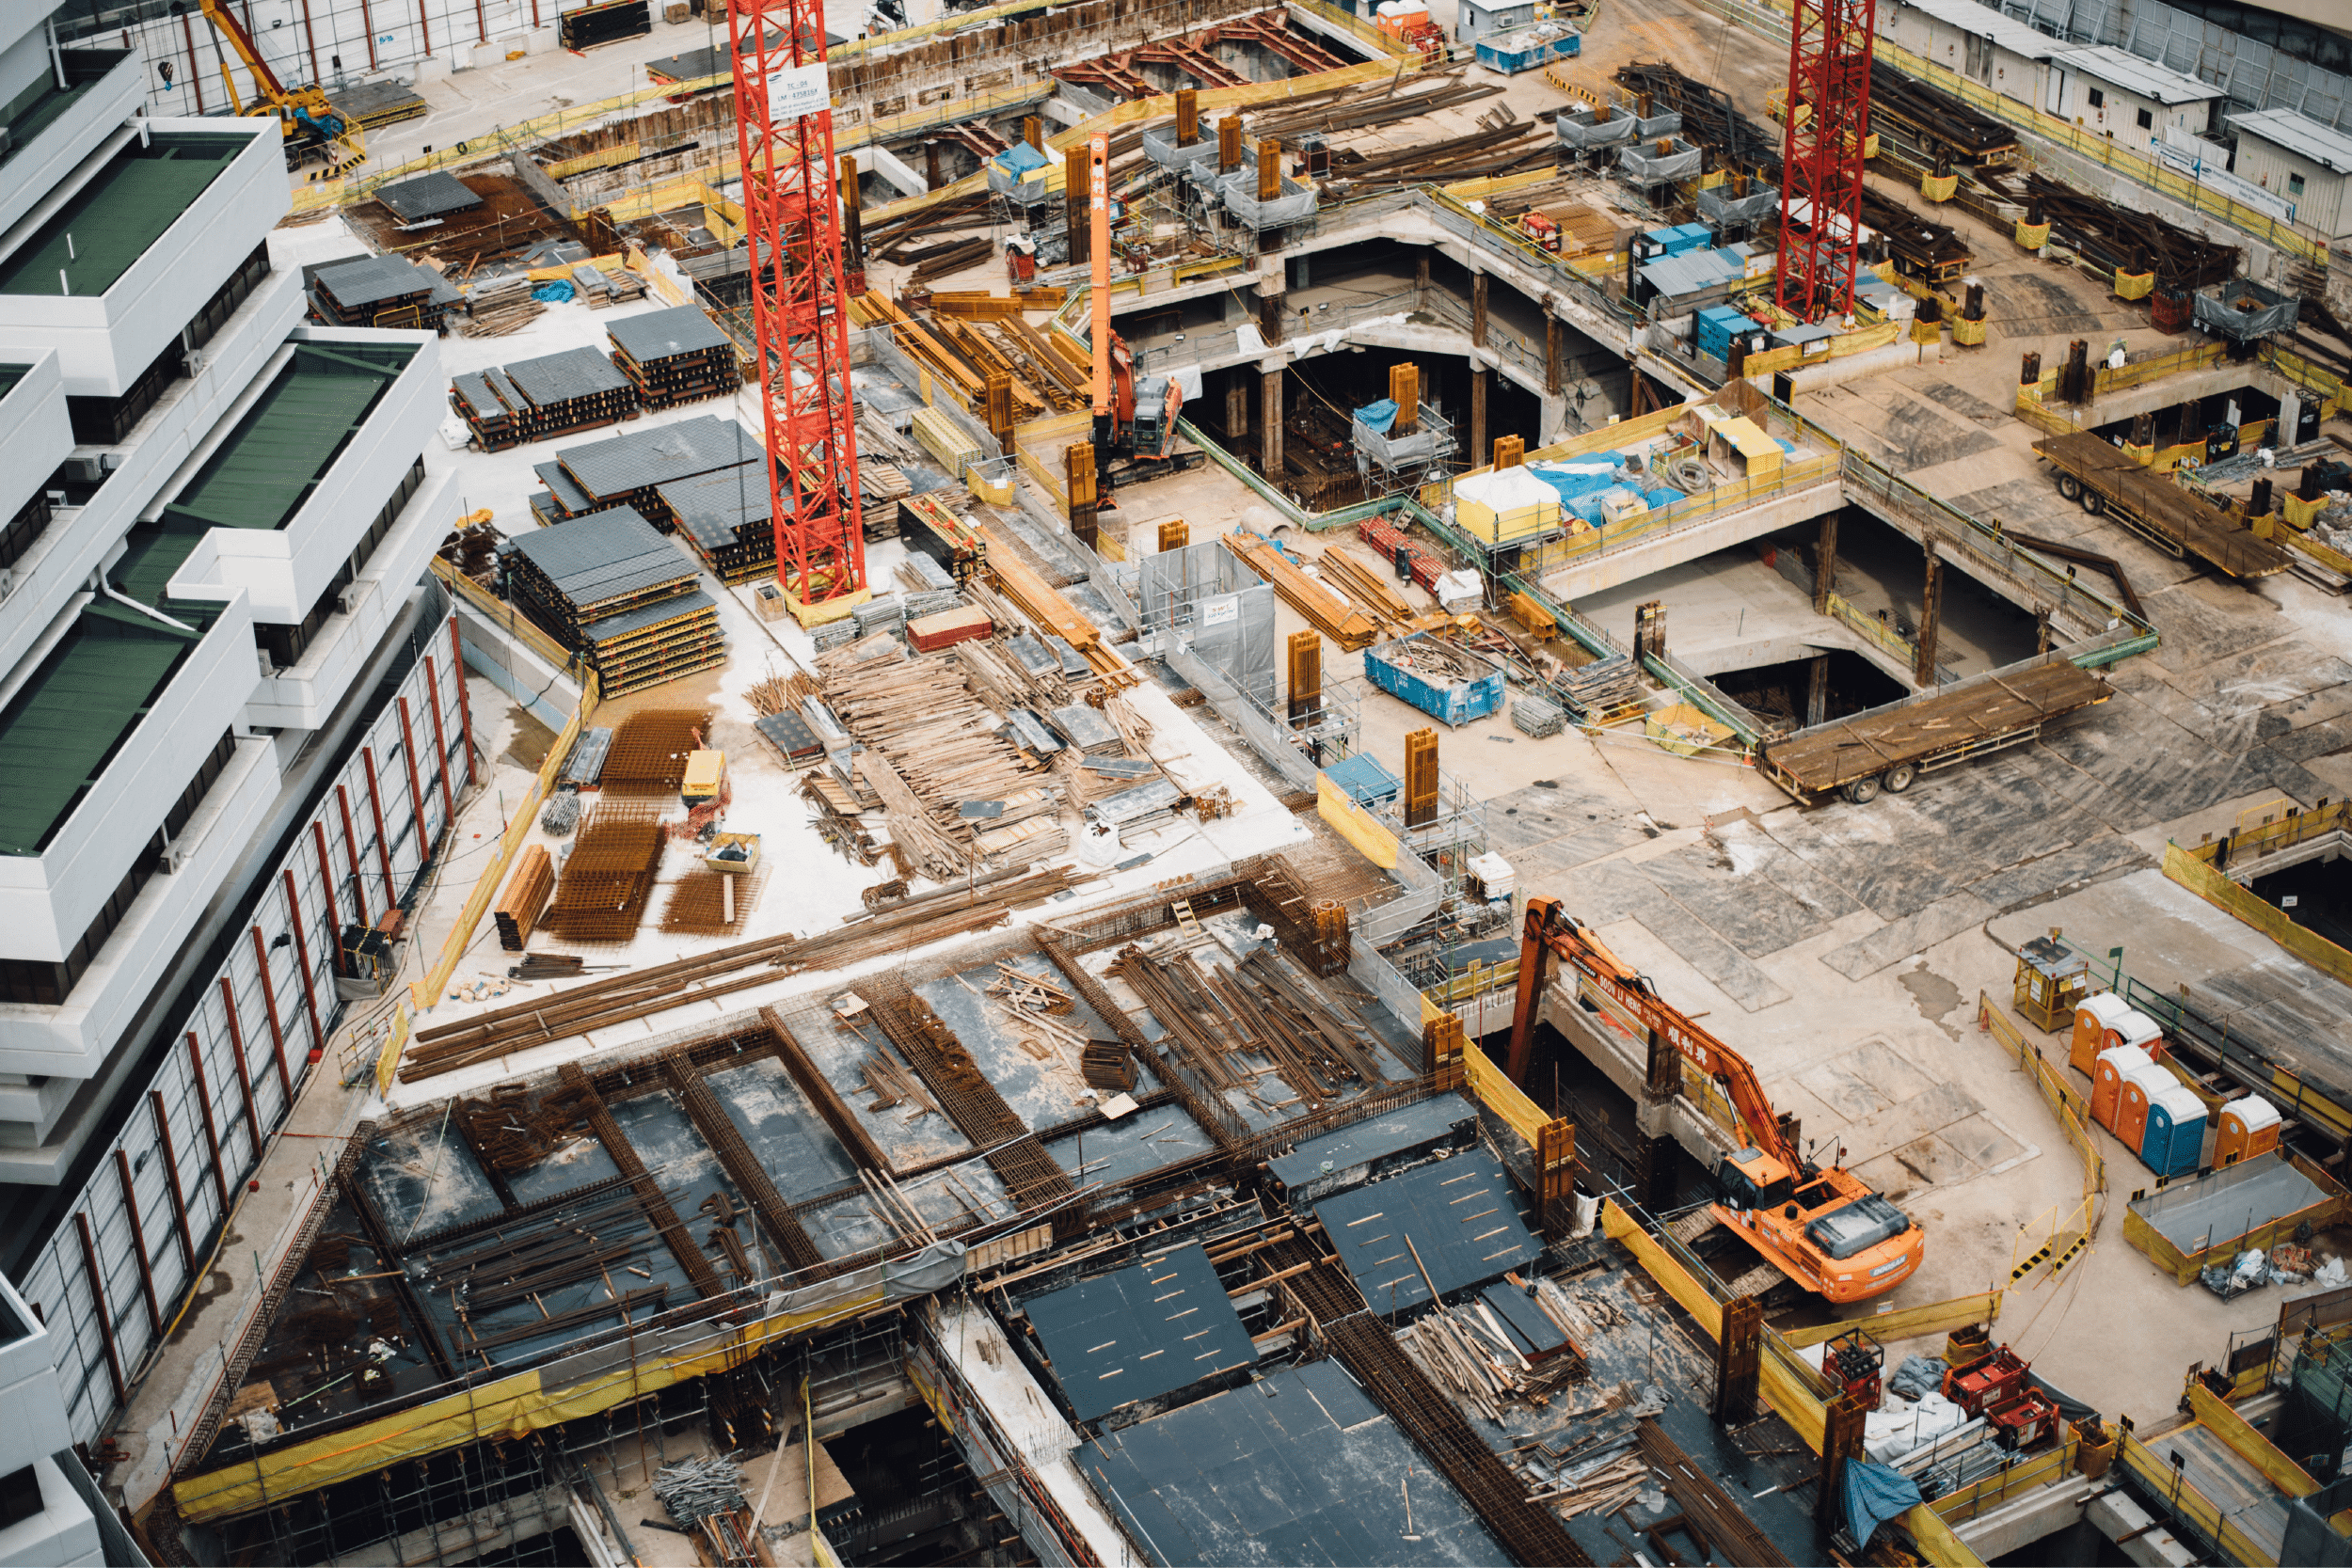 Birdseye view of a construction site